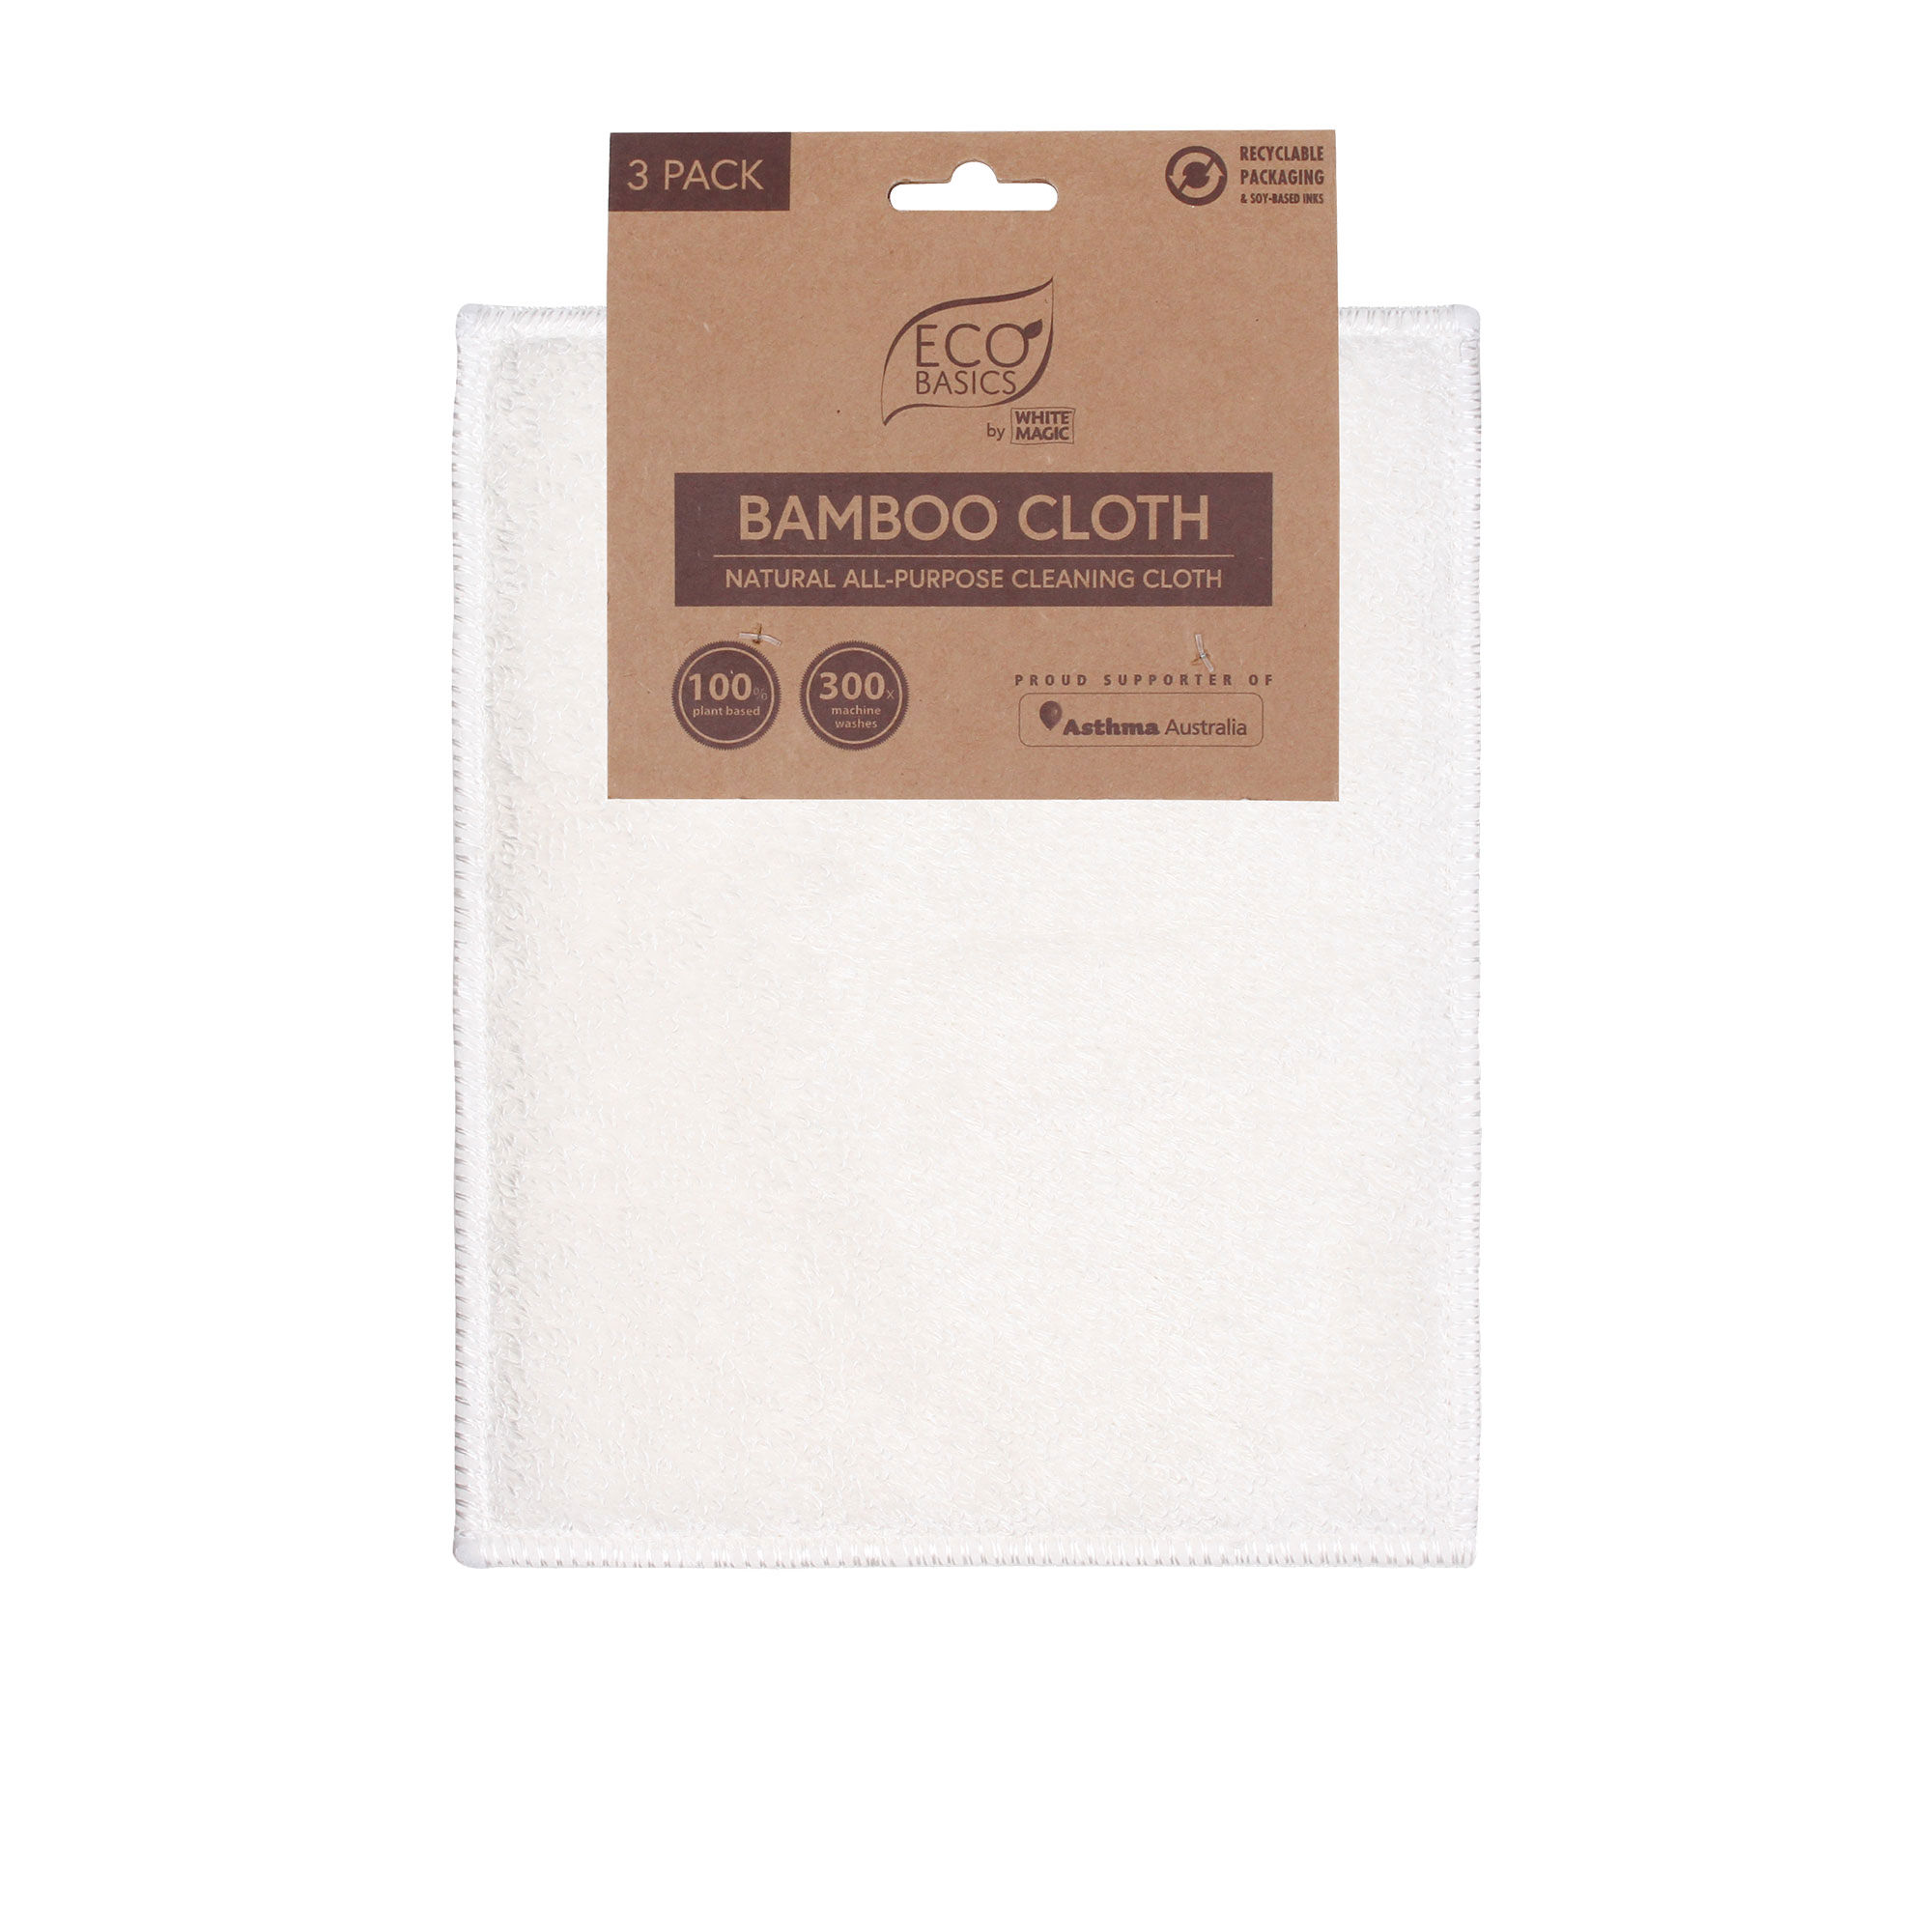 White Magic Eco Basics 3pk Bamboo Cloth 18x23cm White